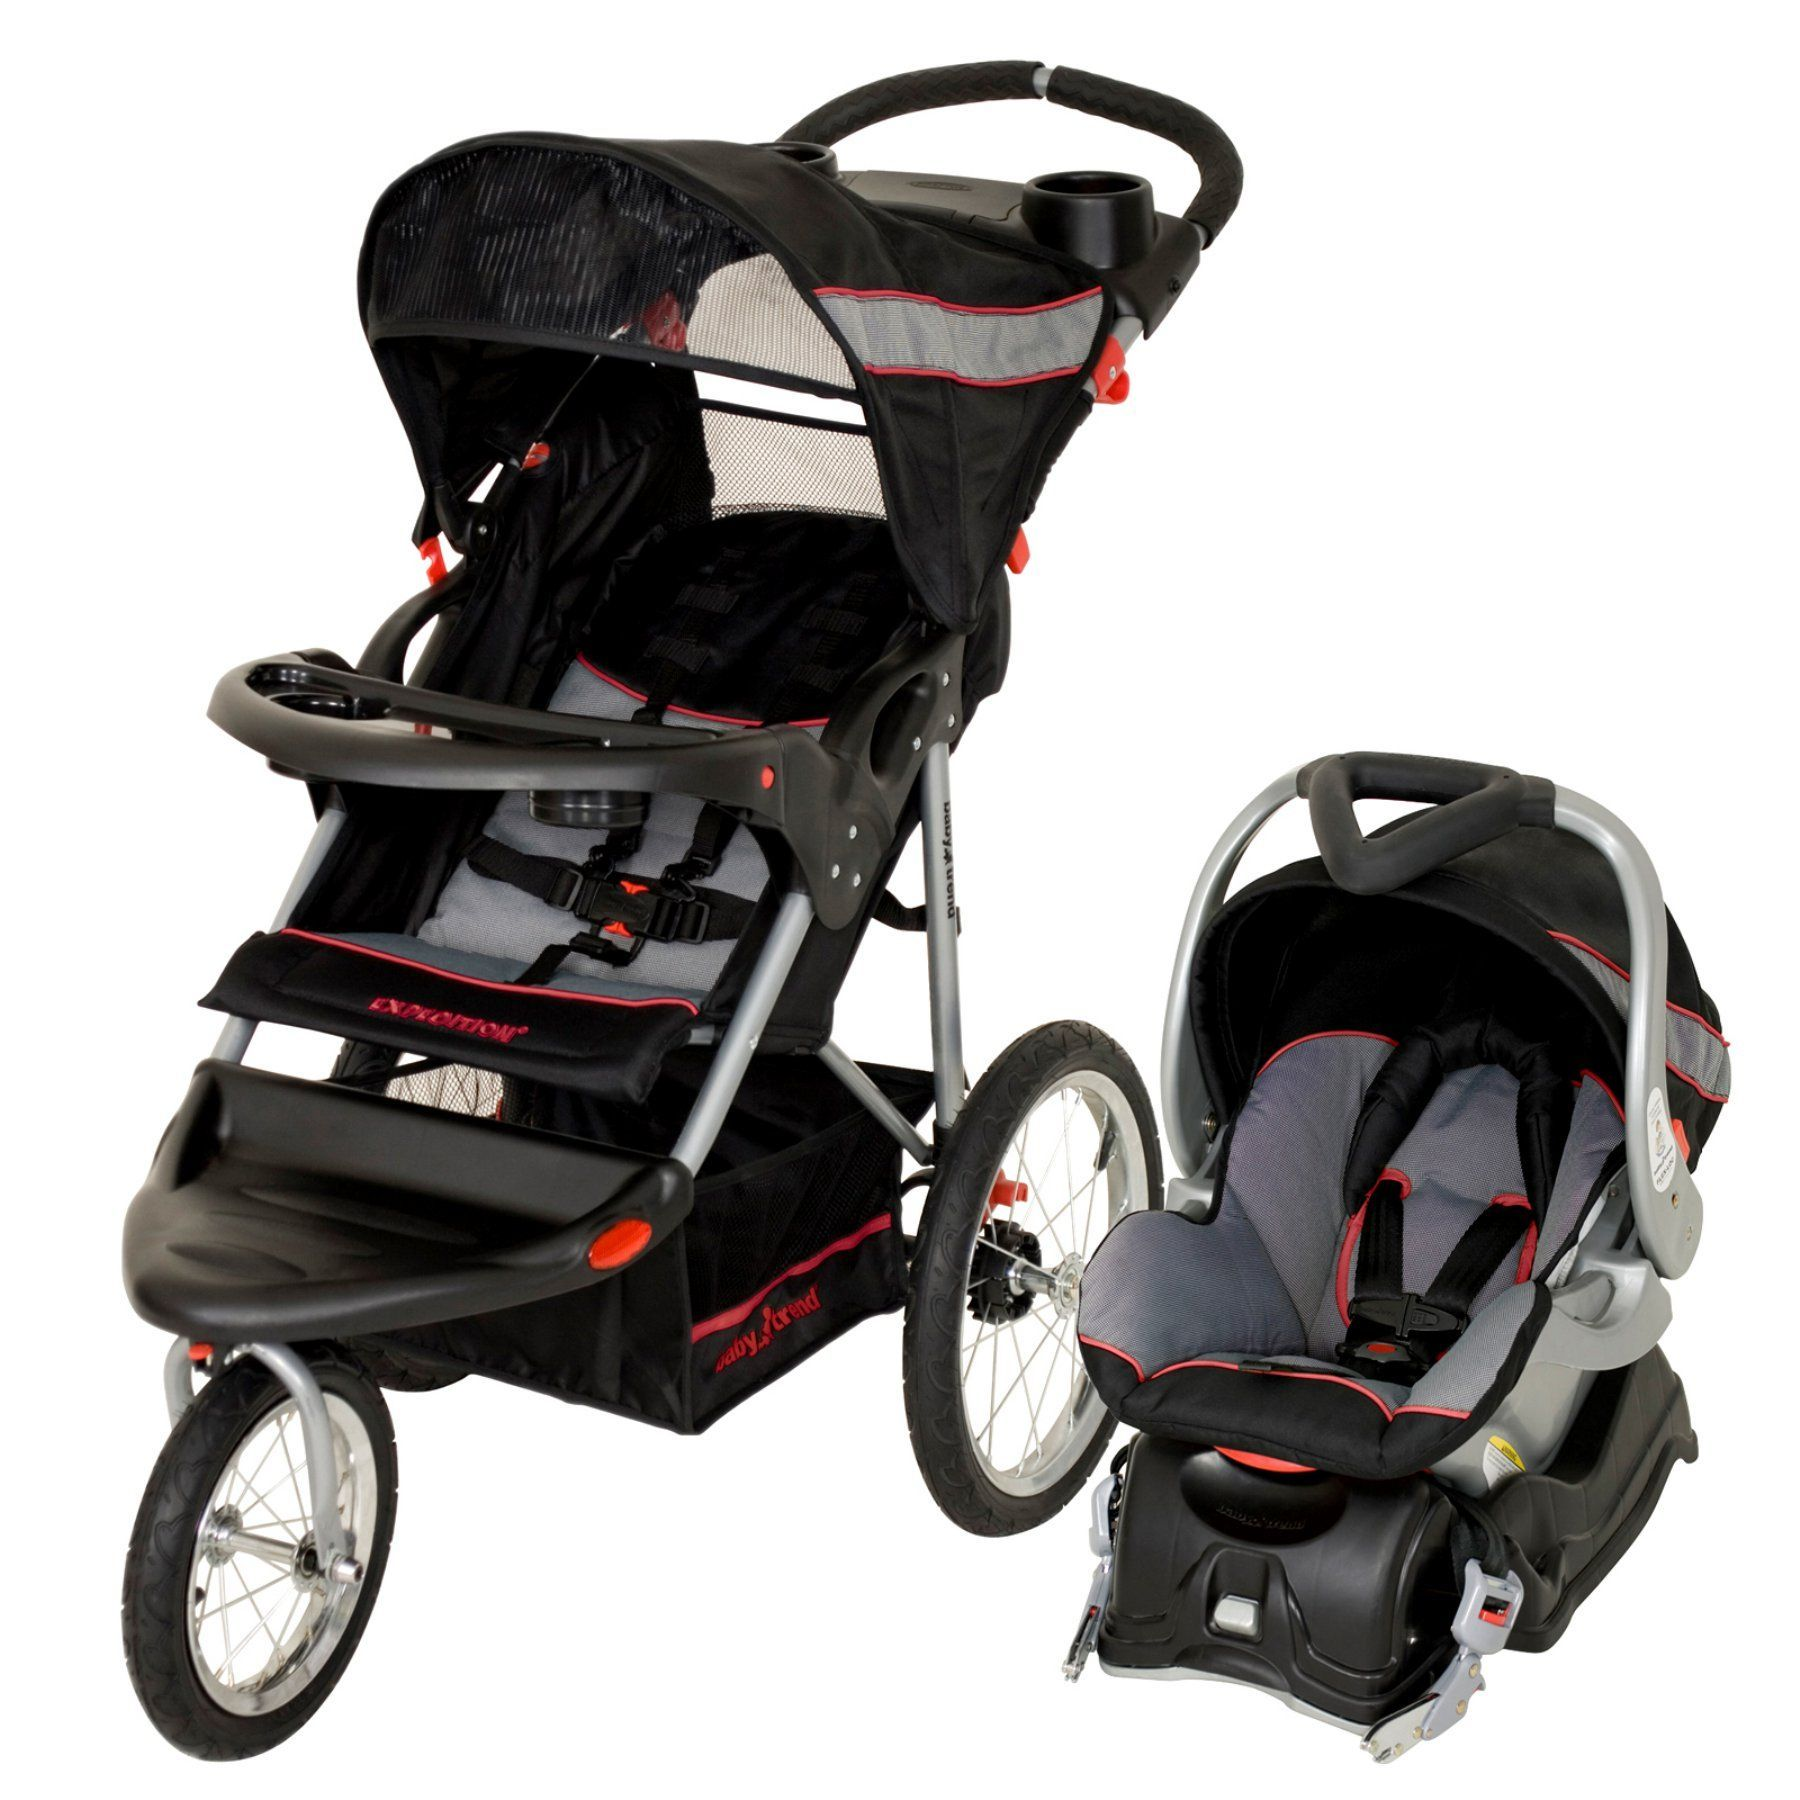 Baby Trend Cityscape Jogger Travel System Vivid Green Baby Trend Expedition Travel System Millennium Tj94773